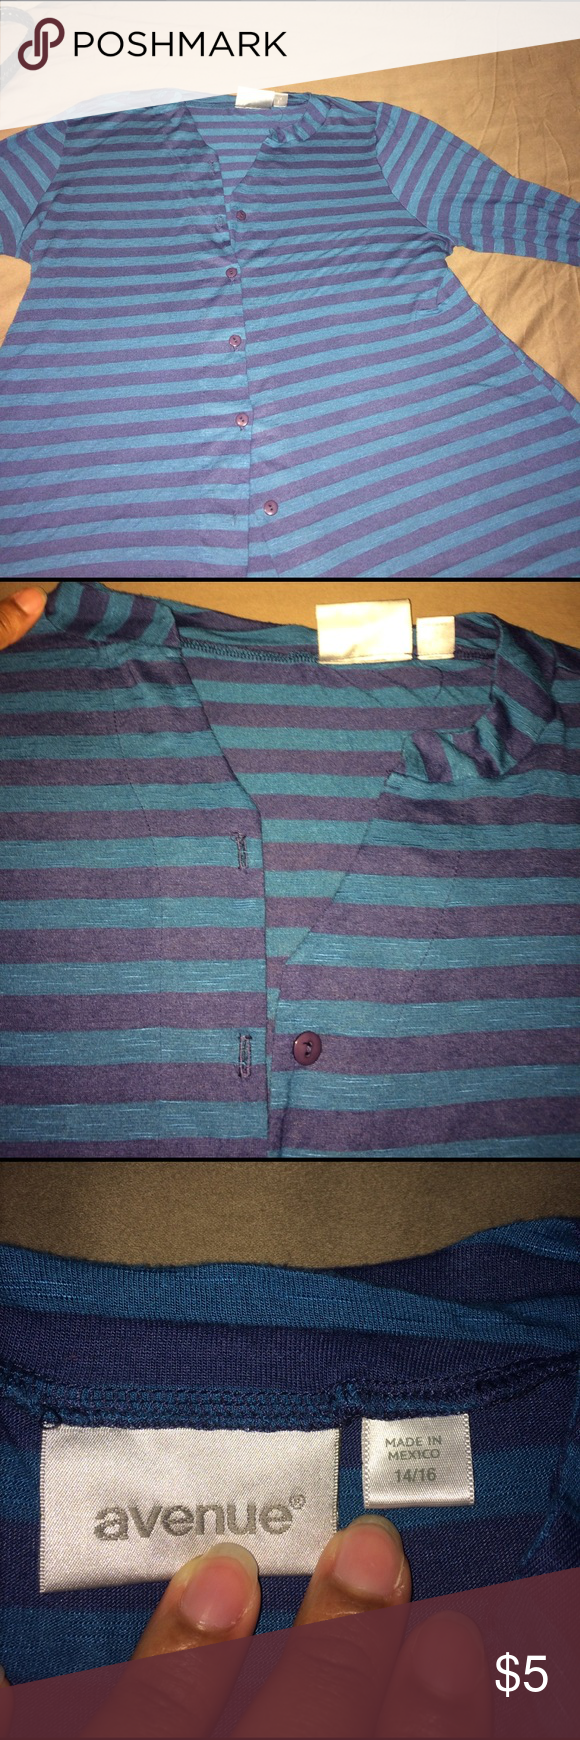 Ladies Top Light blue and blue striped top Avenue Tops Blouses